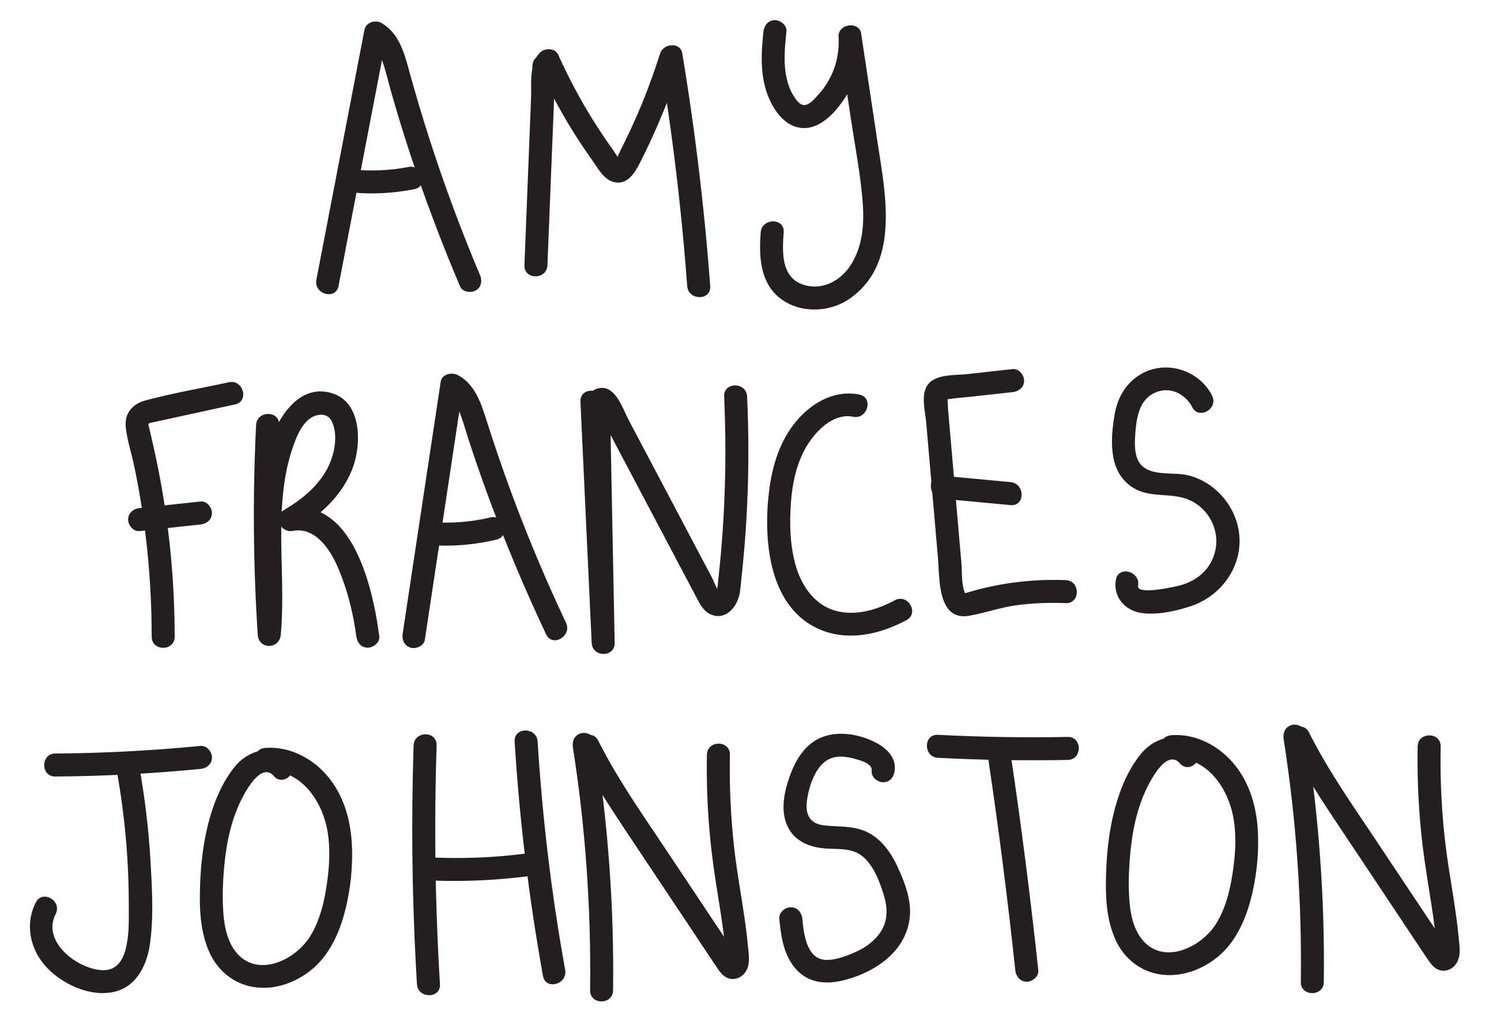 AMY FRANCES JOHNSTON